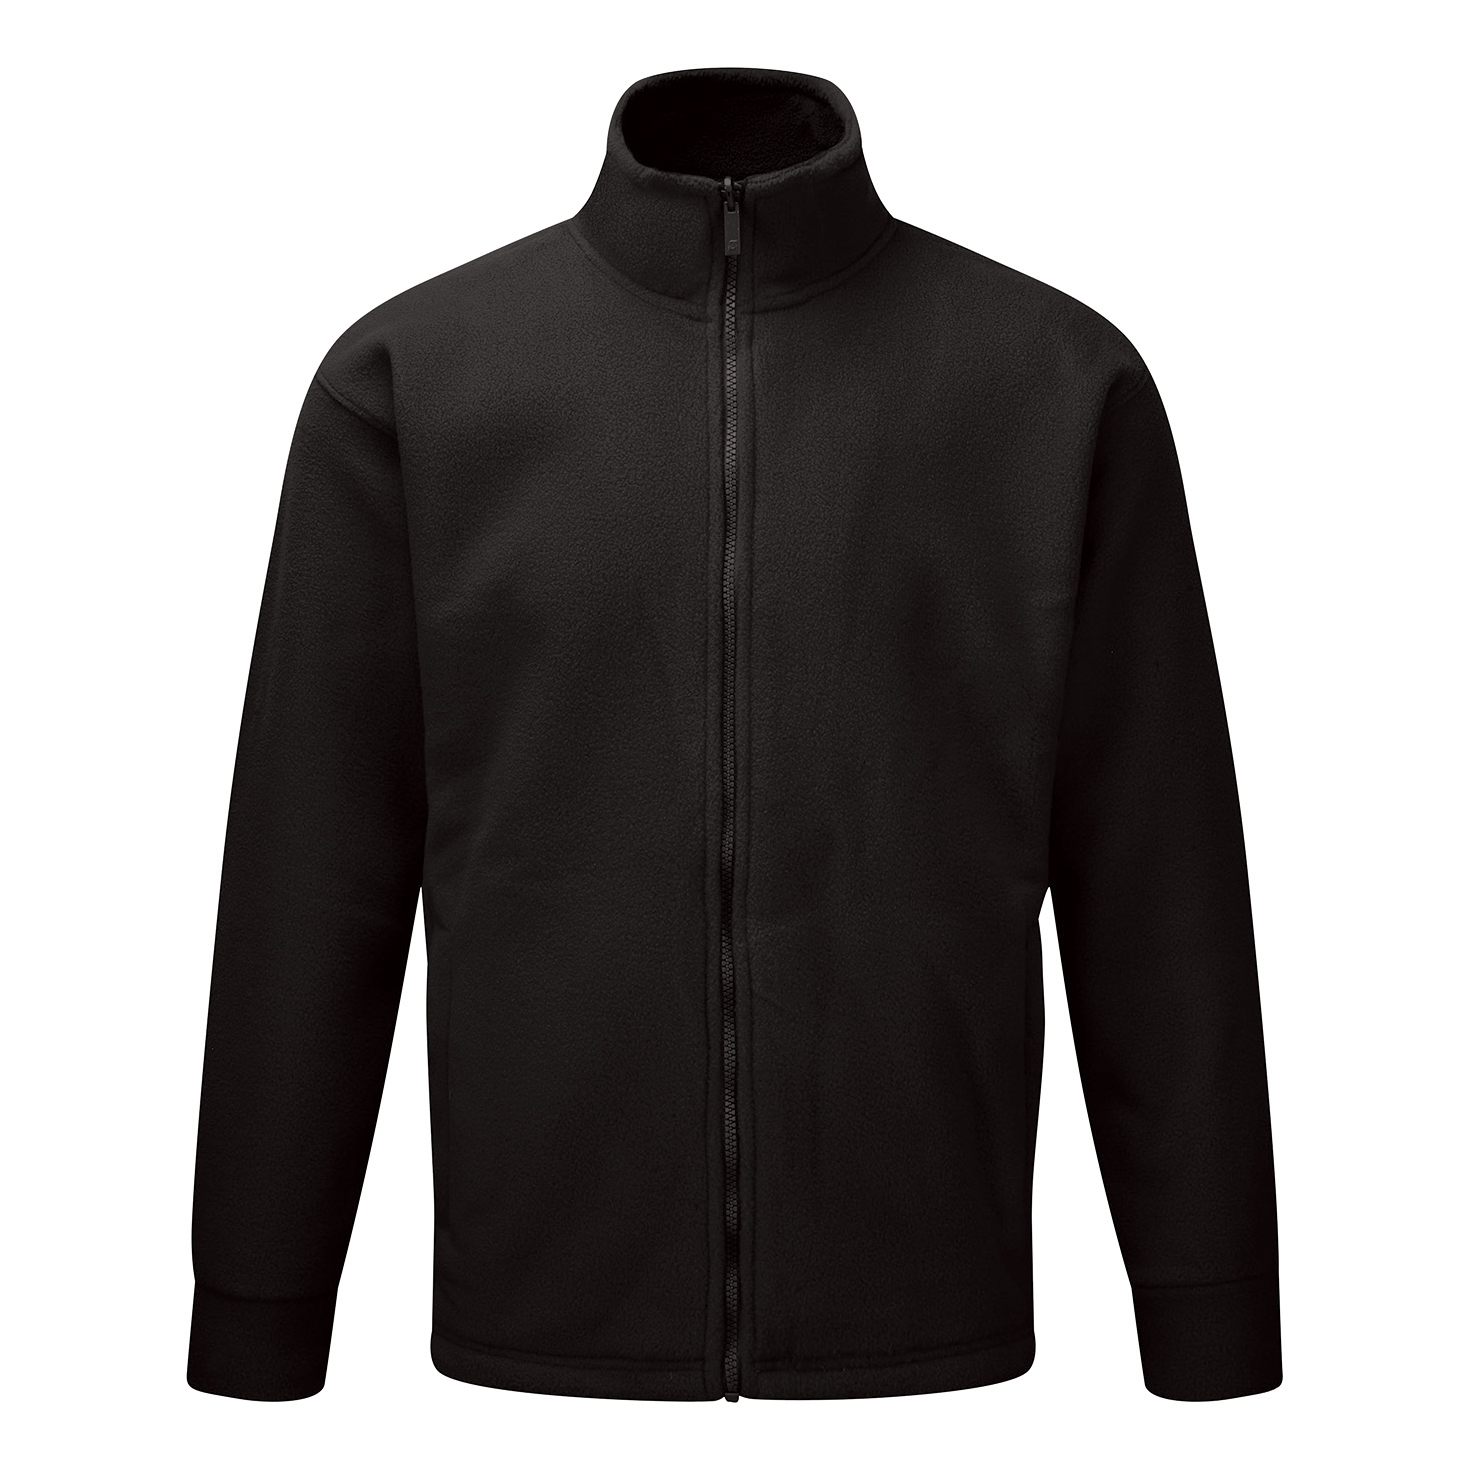 ST Basic Fleece Jacket Elasticated Cuffs and Full Zip Front Med Blk Ref 59072 *Approx 3 Day Leadtime*